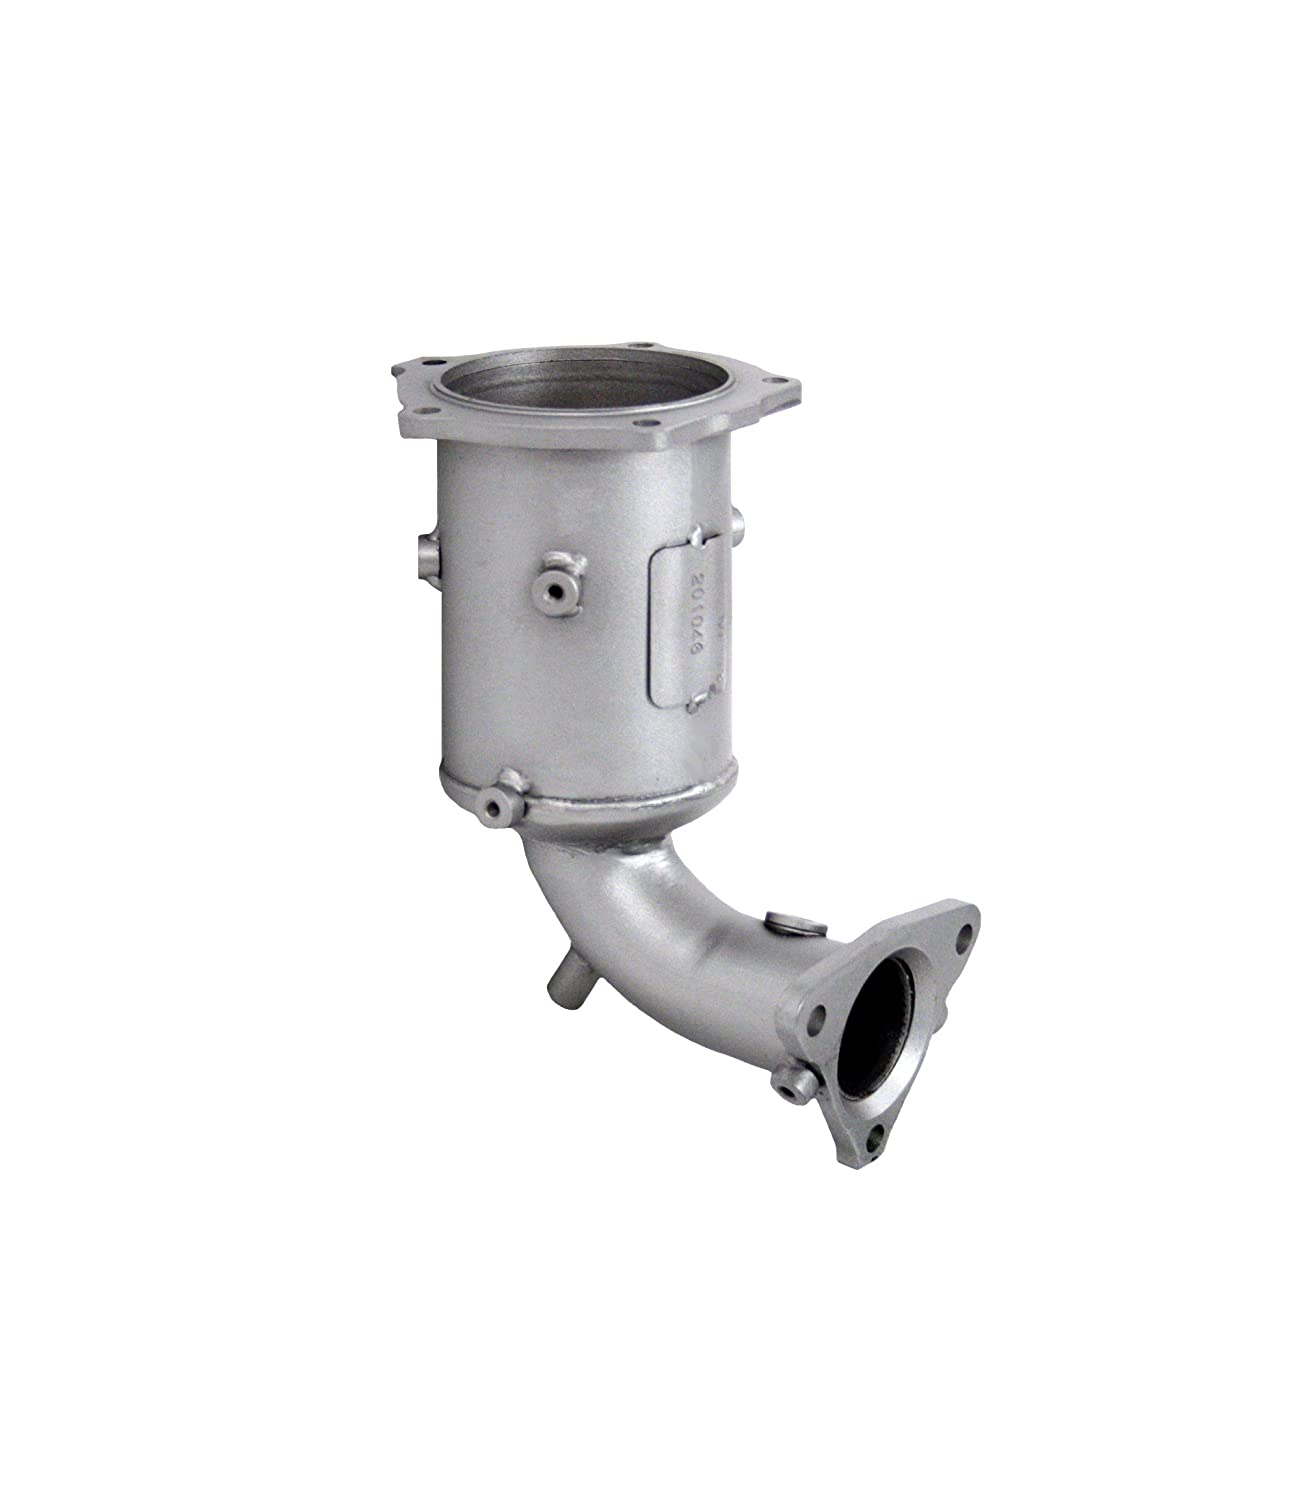 Pacesetter 201046 Direct Fit Catalytic Converter for Nissan Maxima/Infiniti I30 3.0L Front Engine